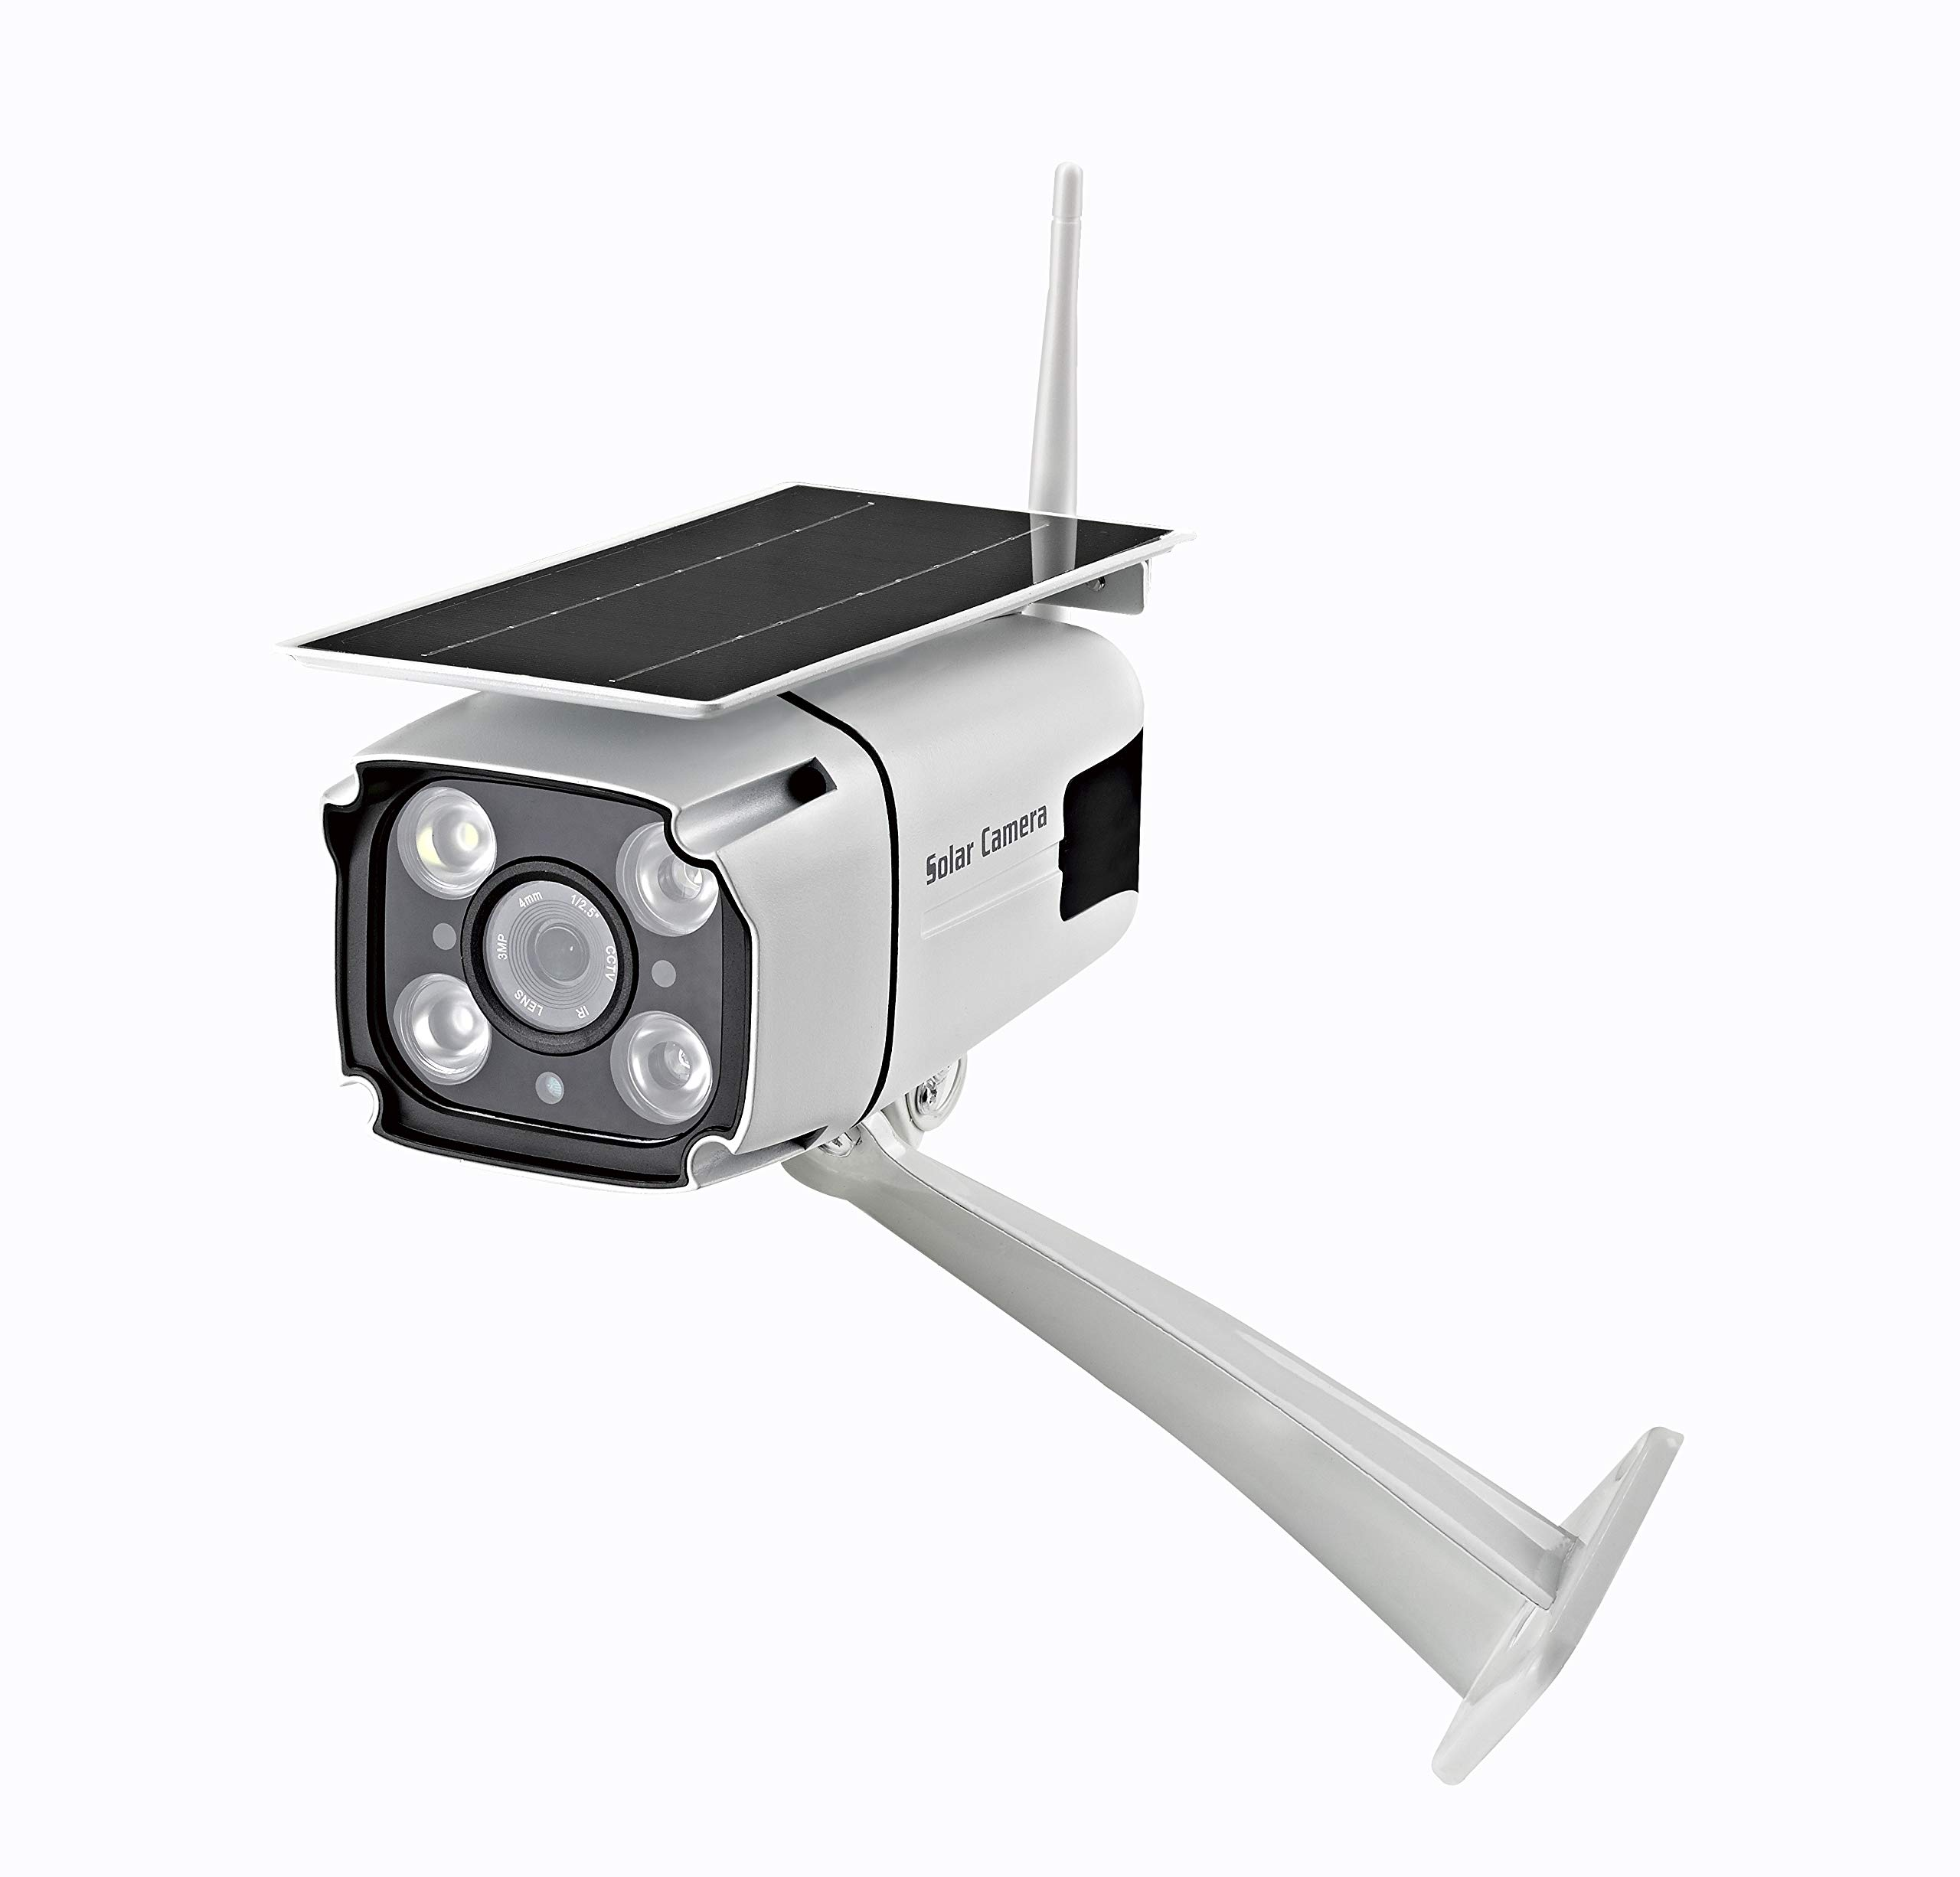 Solar Powered Wireless Security Camera- WiFi IP Solar CCTV Camera Built in Rechargeable Battery, SD Card Storage, IP67 Waterproof, Remote APP, PIR Sensor,for Outdoor Smart Home Security Camera